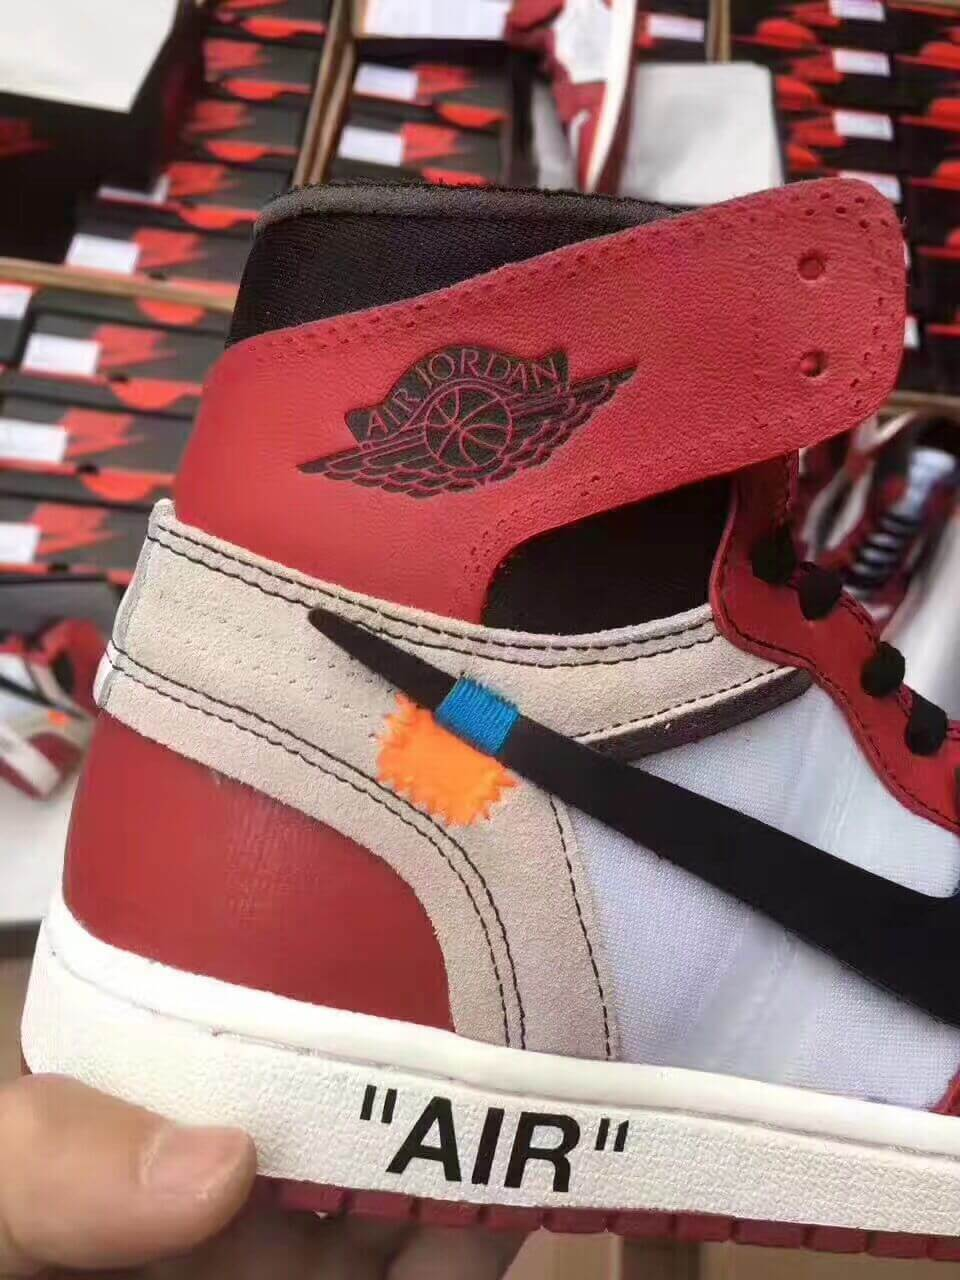 Don't Get Got: Taobao Special Fake Off White Air Jordan 1 Are